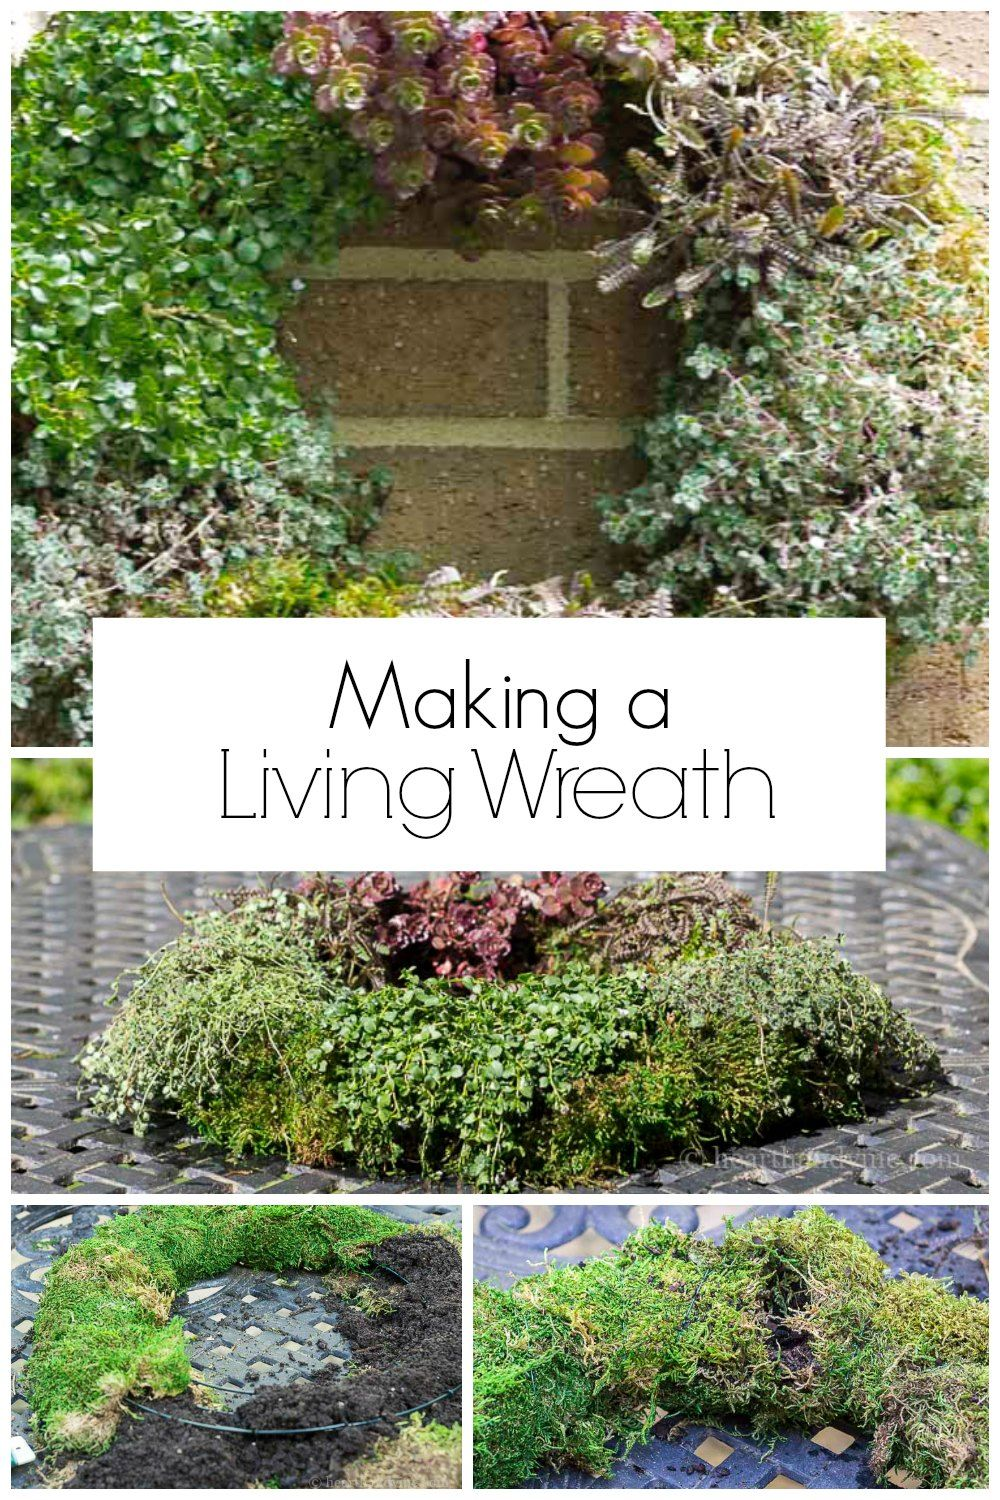 ea03bb3d36a30547b28c6ebef02f9cca - How To Make A Living Gardening